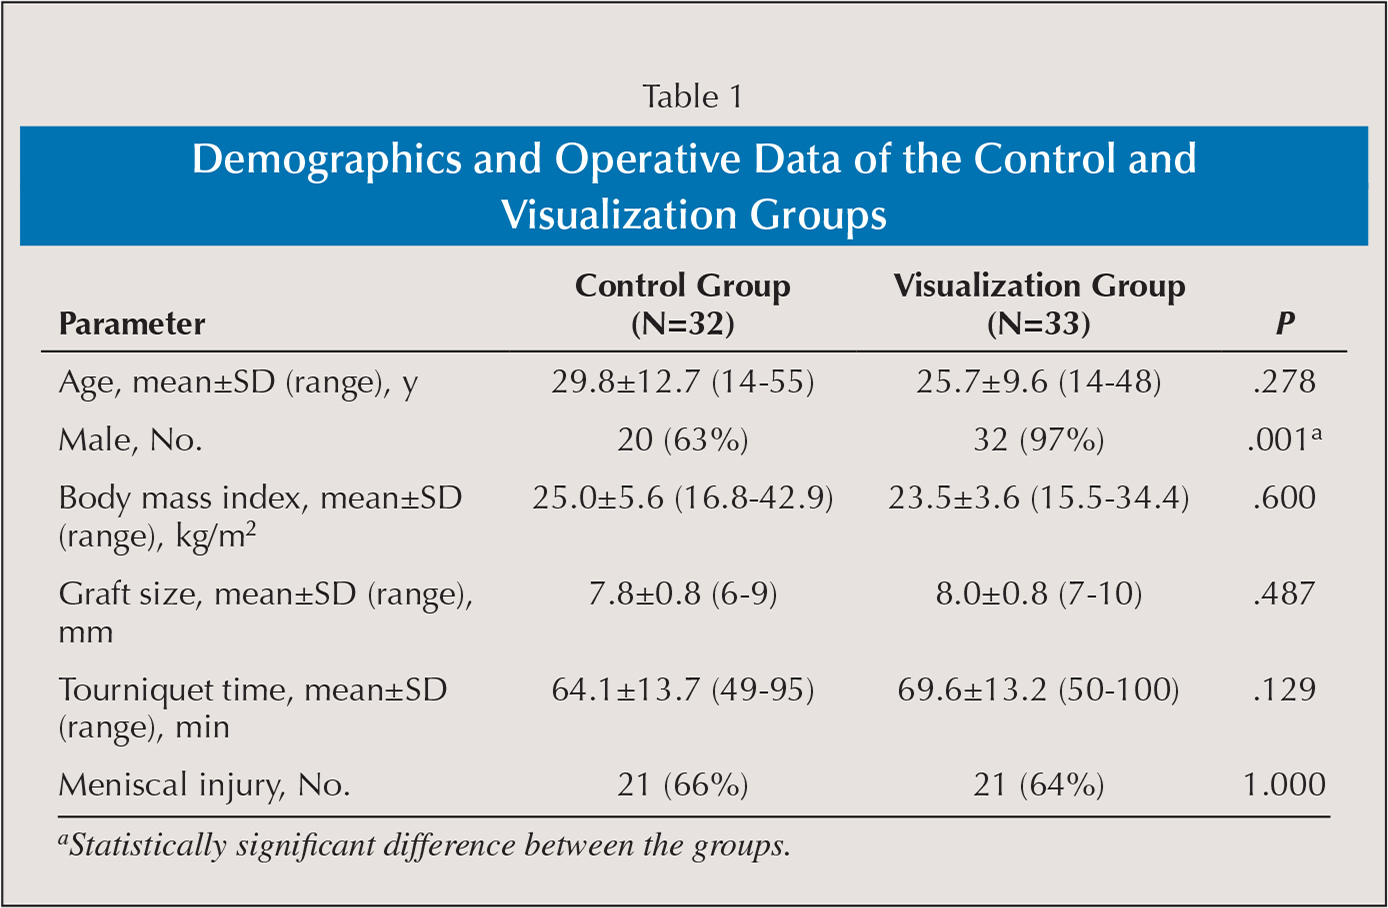 Demographics and Operative Data of the Control and Visualization Groups